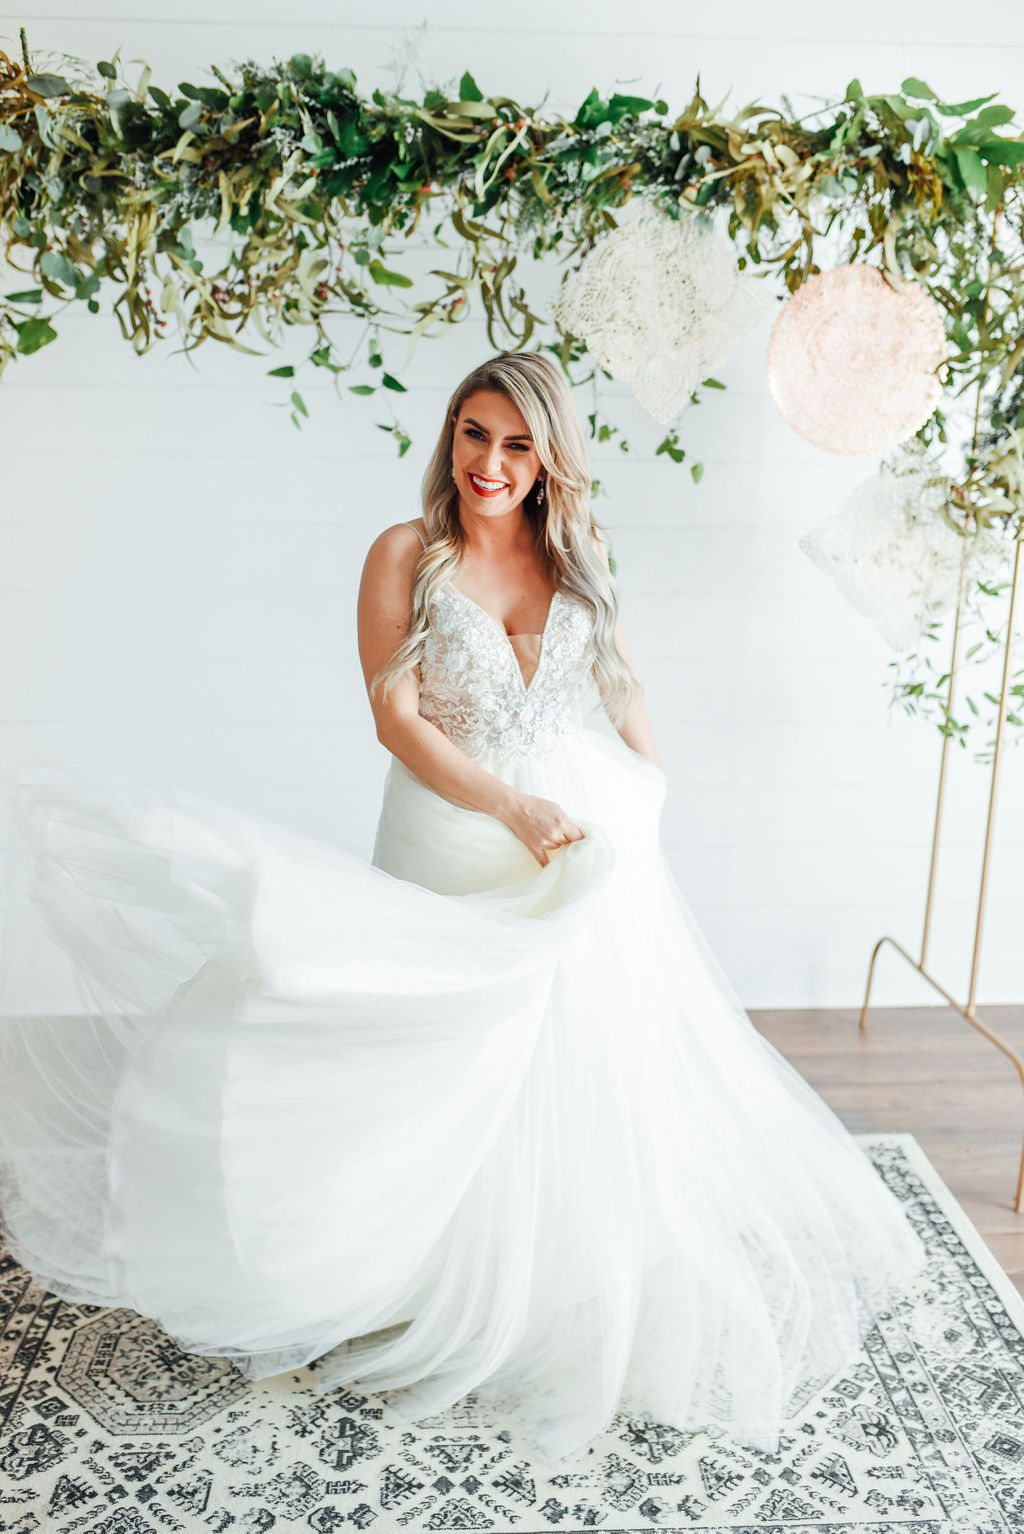 The Wedding Studio In Greenwood Indiana Offers A Unique Variety Of Wedding Dresses We Offer Coutu Affordable Bridal Gowns Wedding Dresses Couture Bridal Gowns